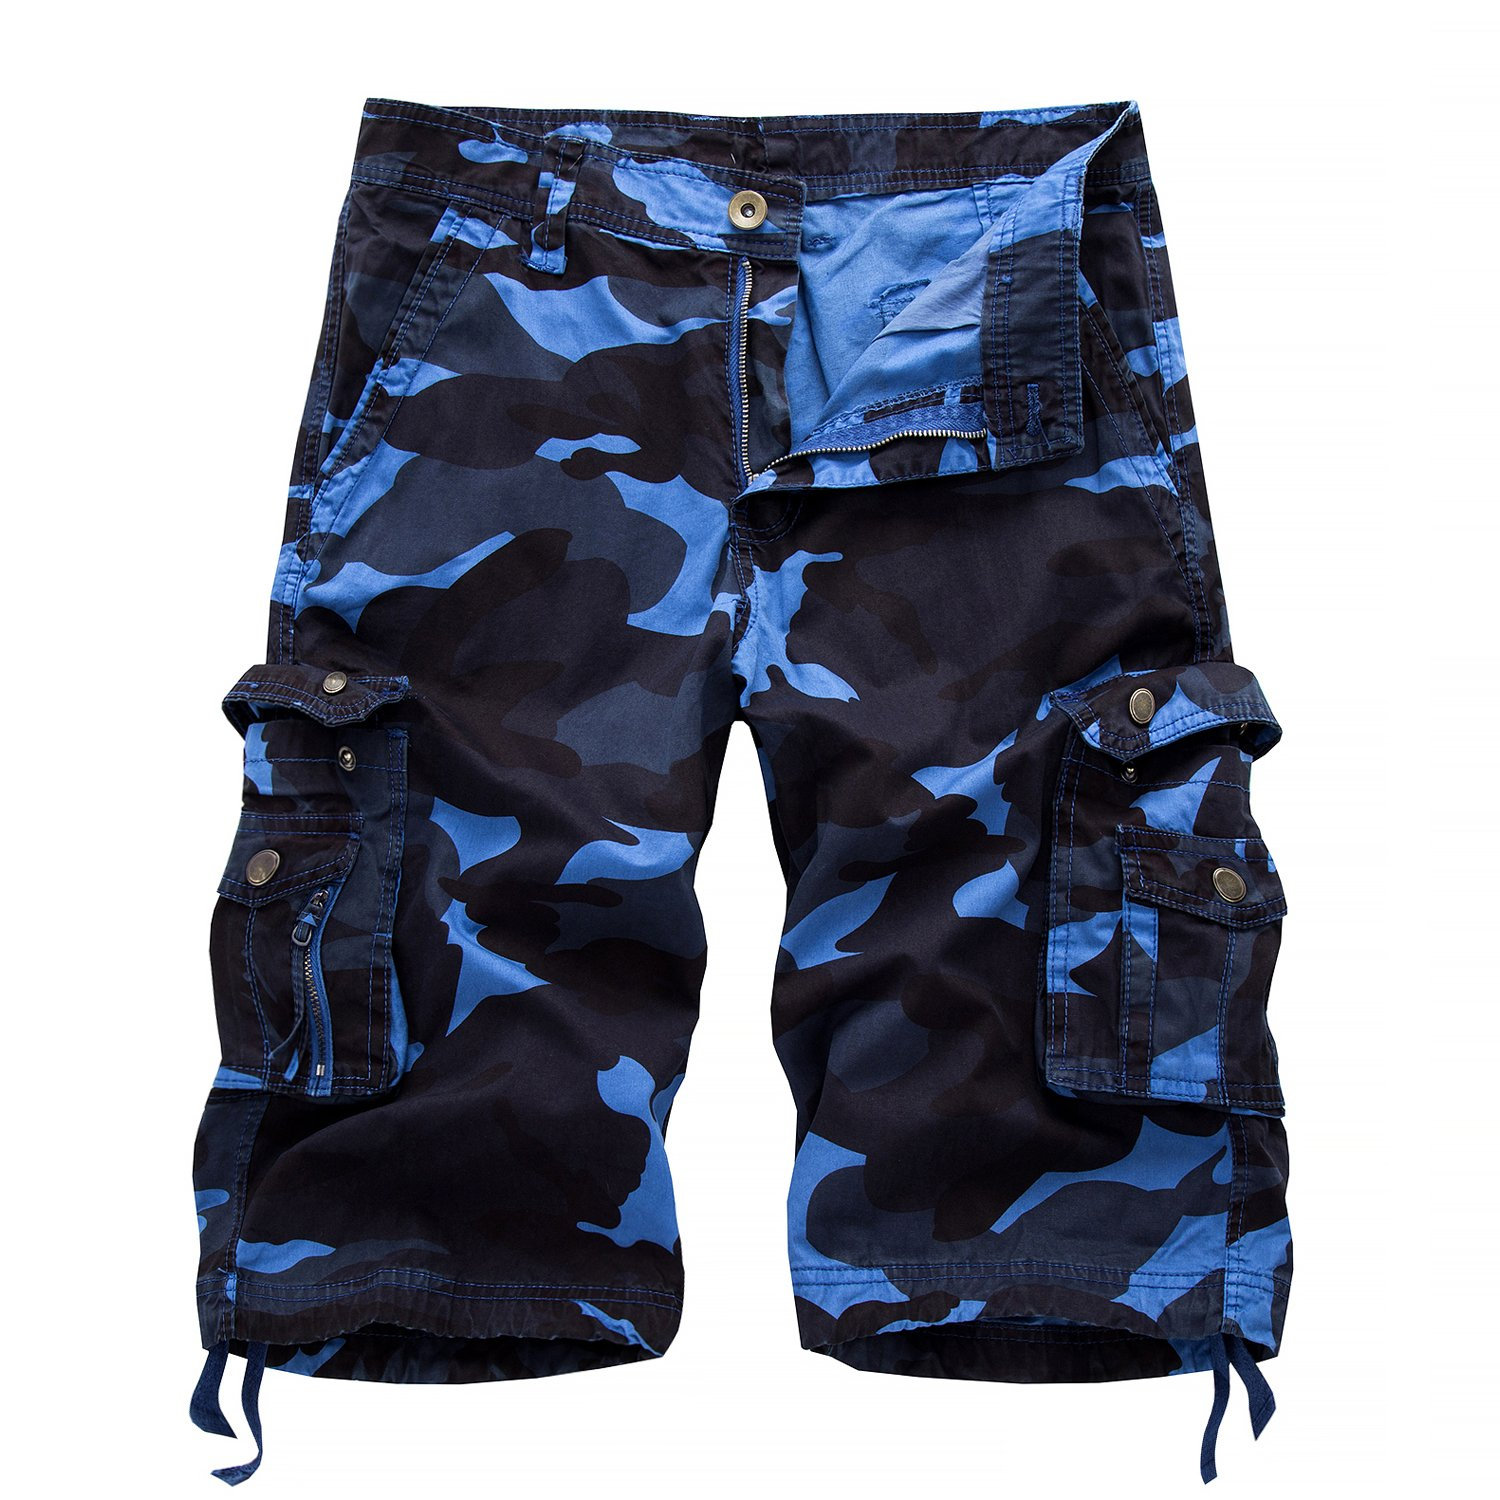 Hycsen Mens Cotton Relaxed Fit Outdoor Camouflage Camo Cargo Shorts-Royal Blue-32